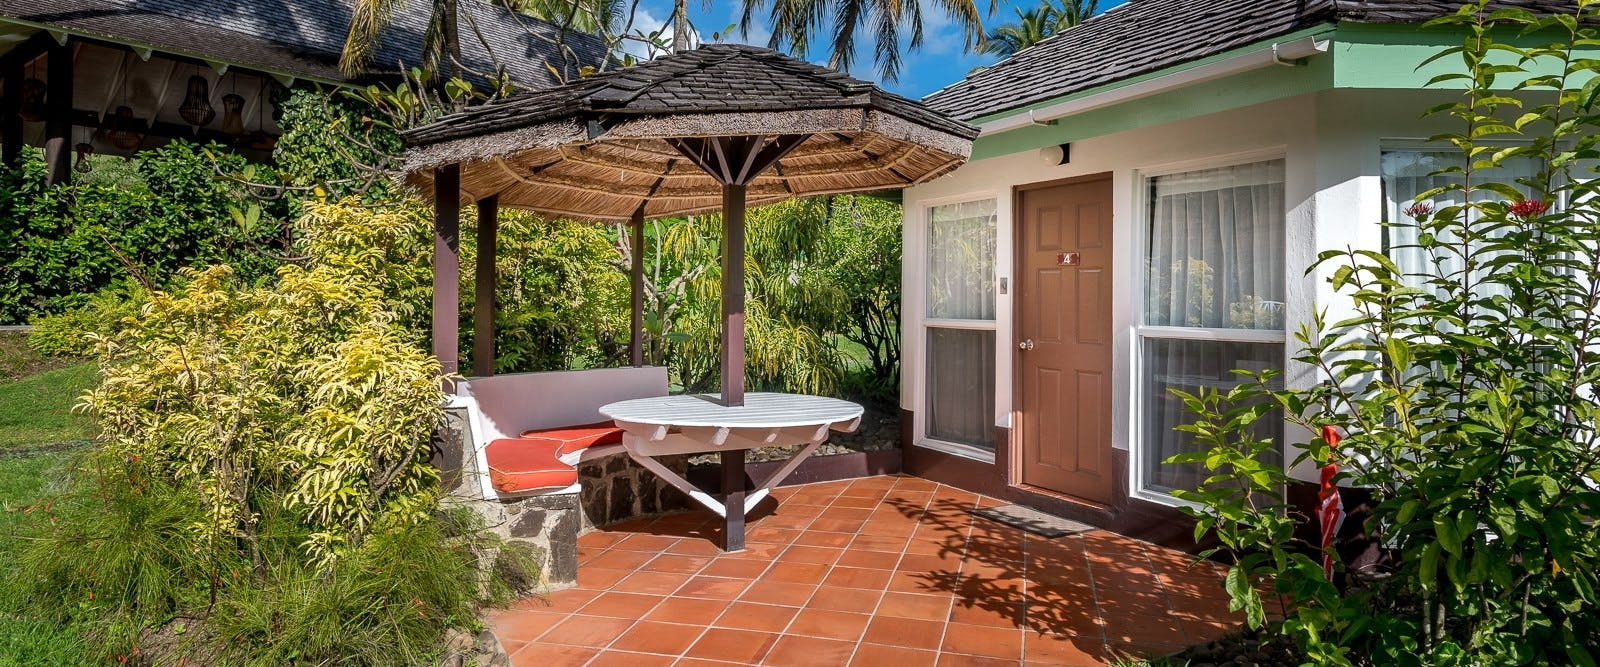 Superior room patio at East Winds, St Lucia